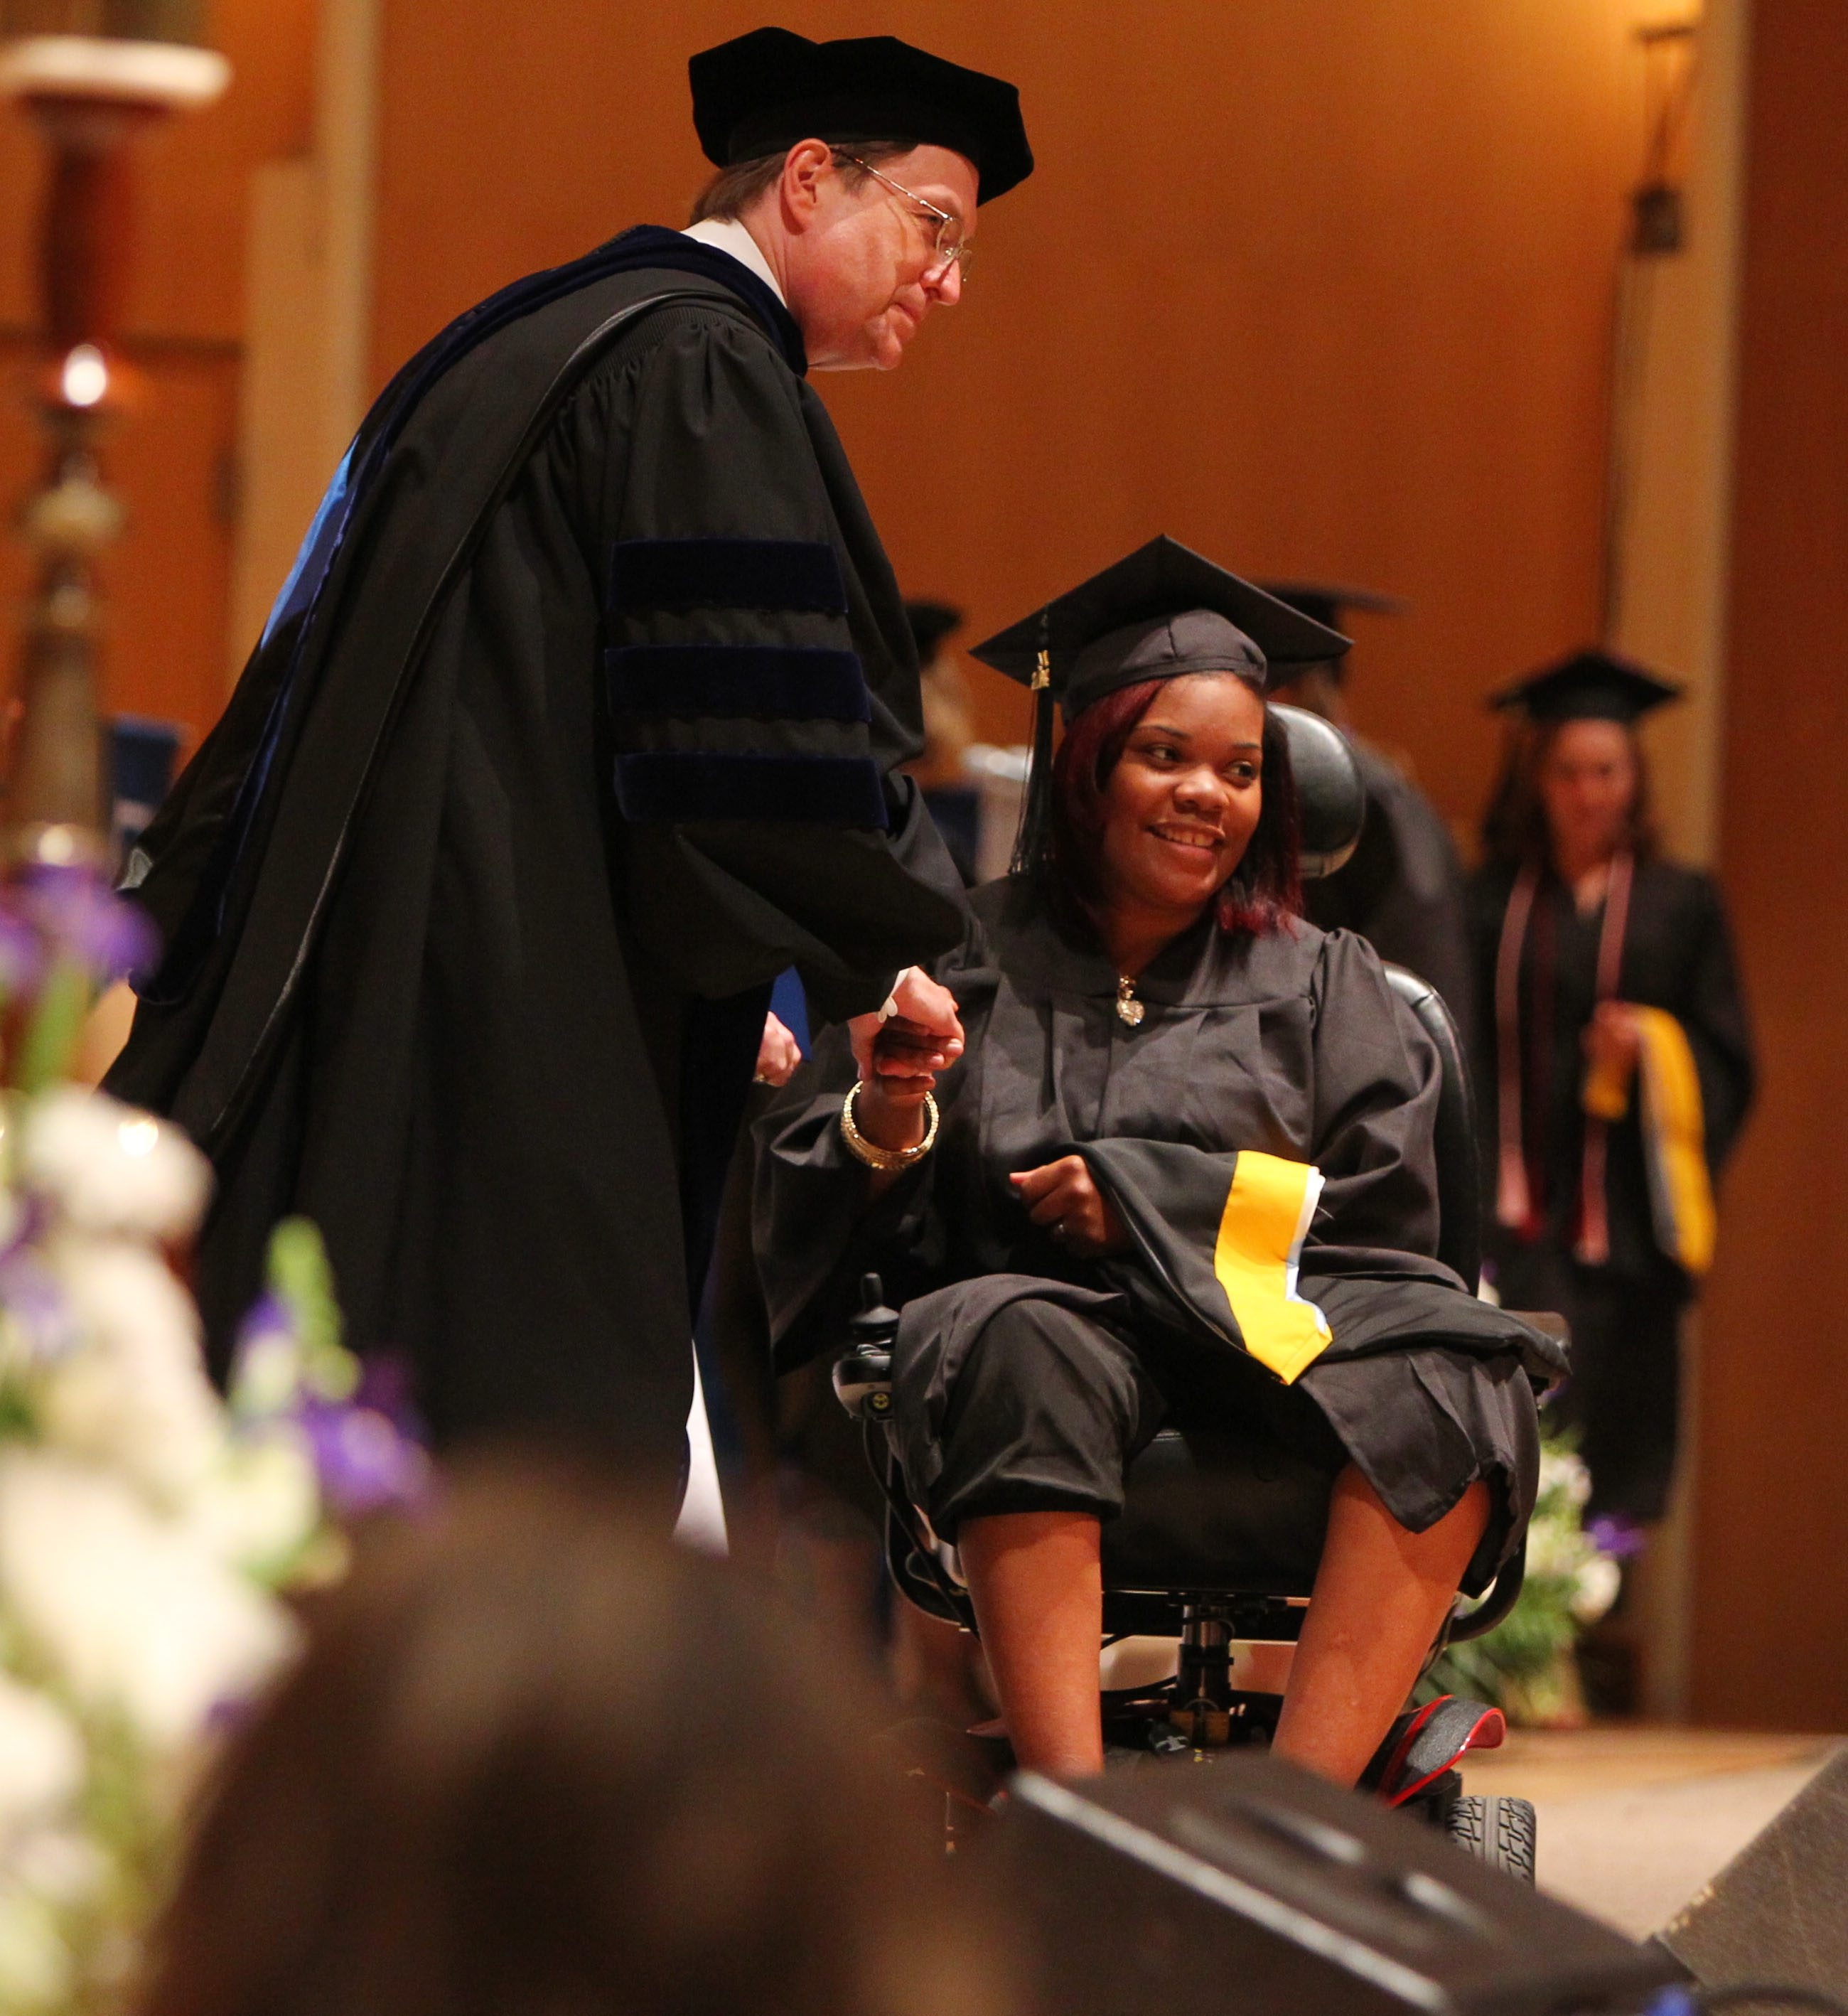 La'Quisha Pompey receives her diploma from college President Gary A. Olson during Daemen College's commencement ceremonies Saturday in Kleinhans Music Hall.